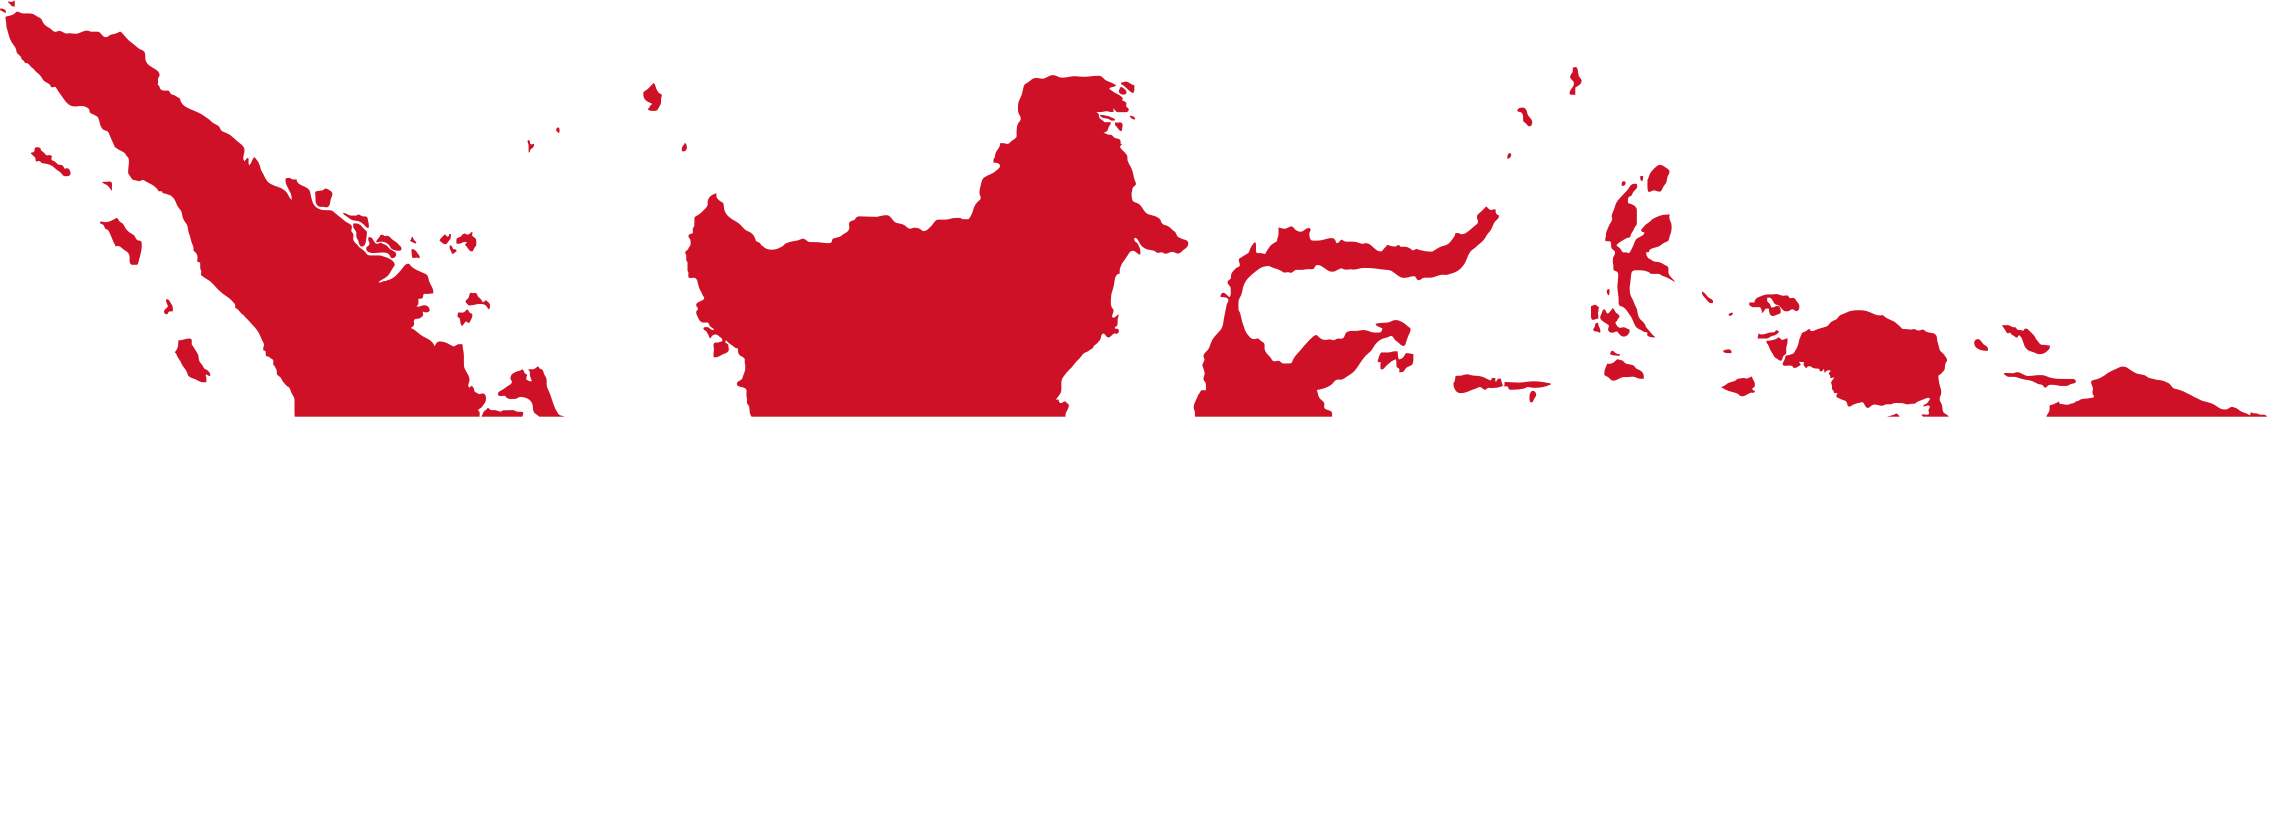 Indonesia clipart clip art freeuse download Clipart - Indonesia Map Flag clip art freeuse download